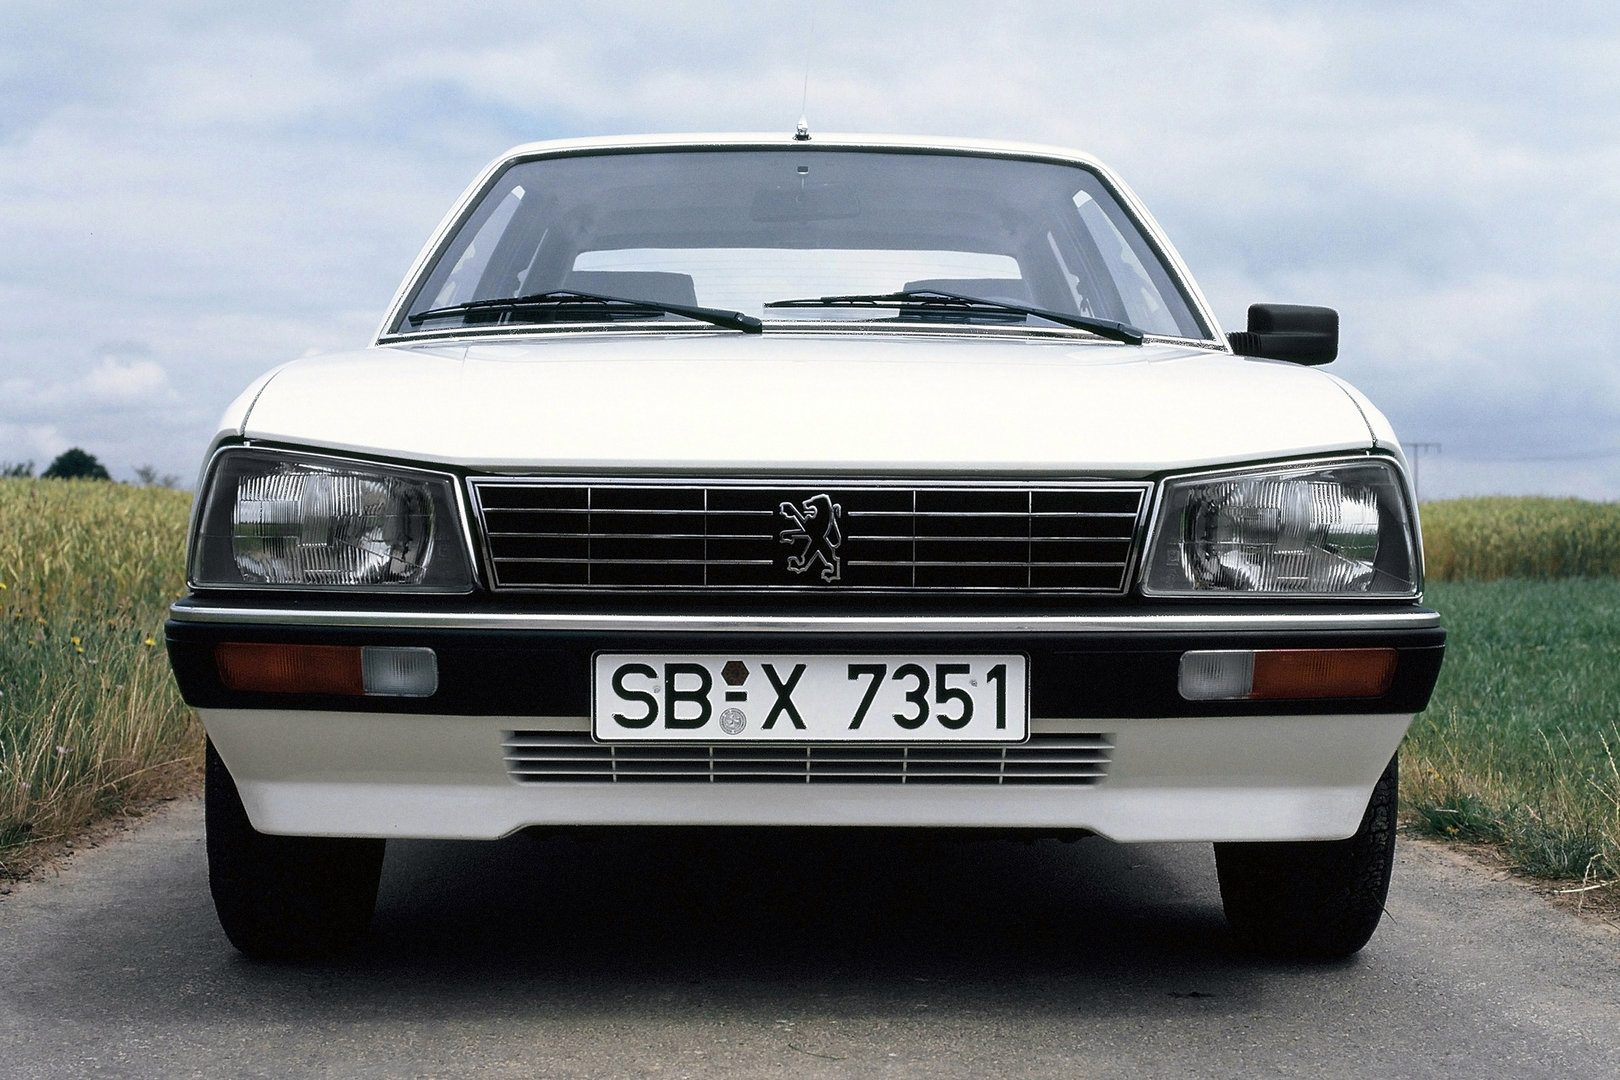 Peugeot 505 Turbo Injection 1986 1